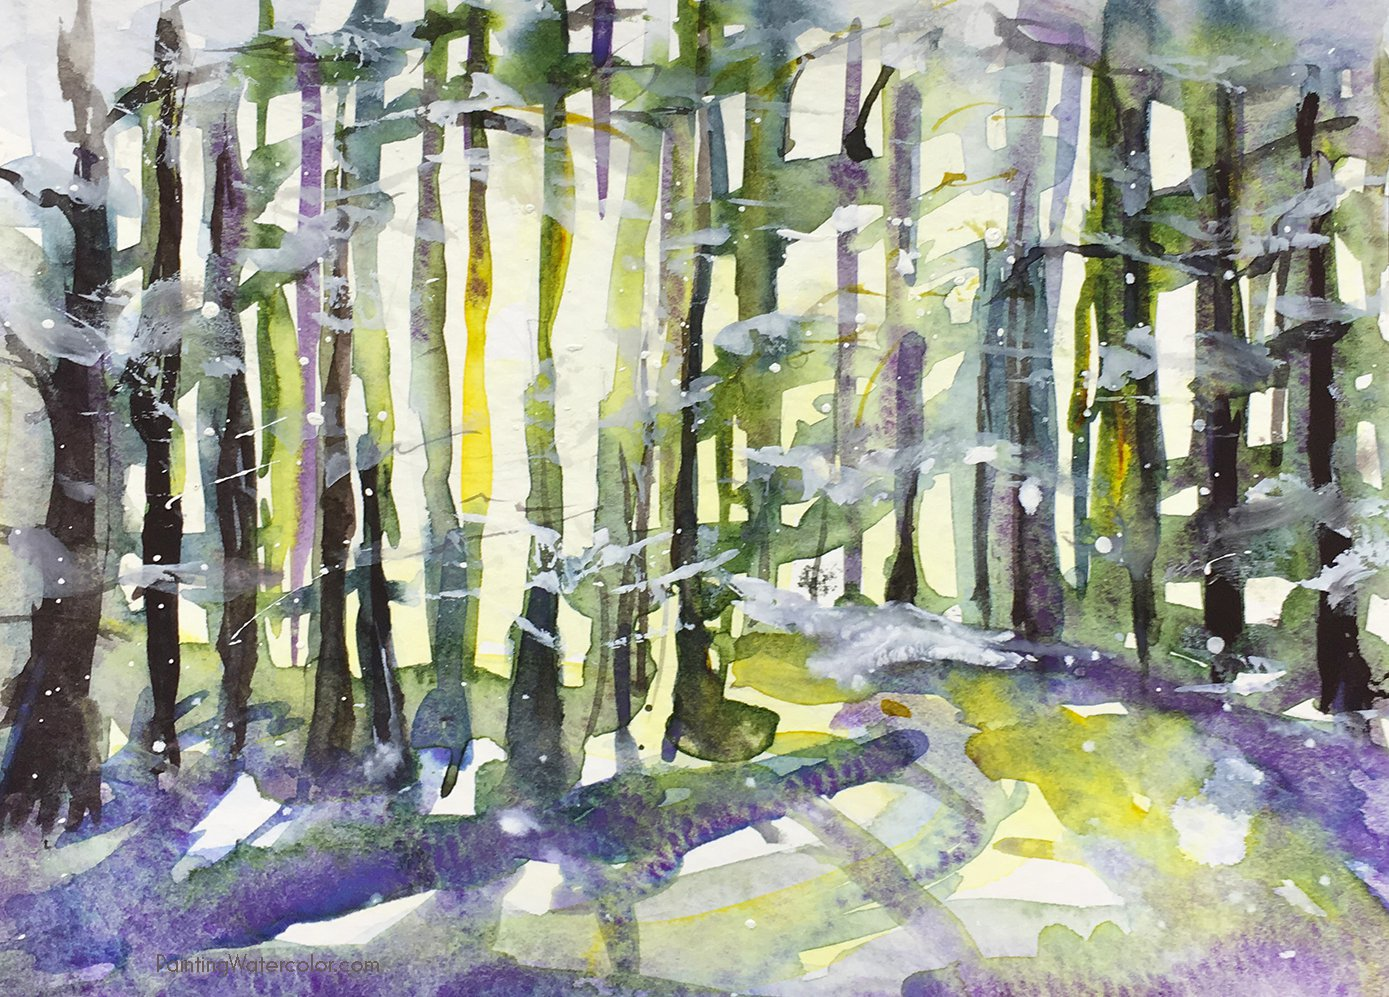 12 Days of Christmas Cards, Snowy Woods by Jennifer Branch